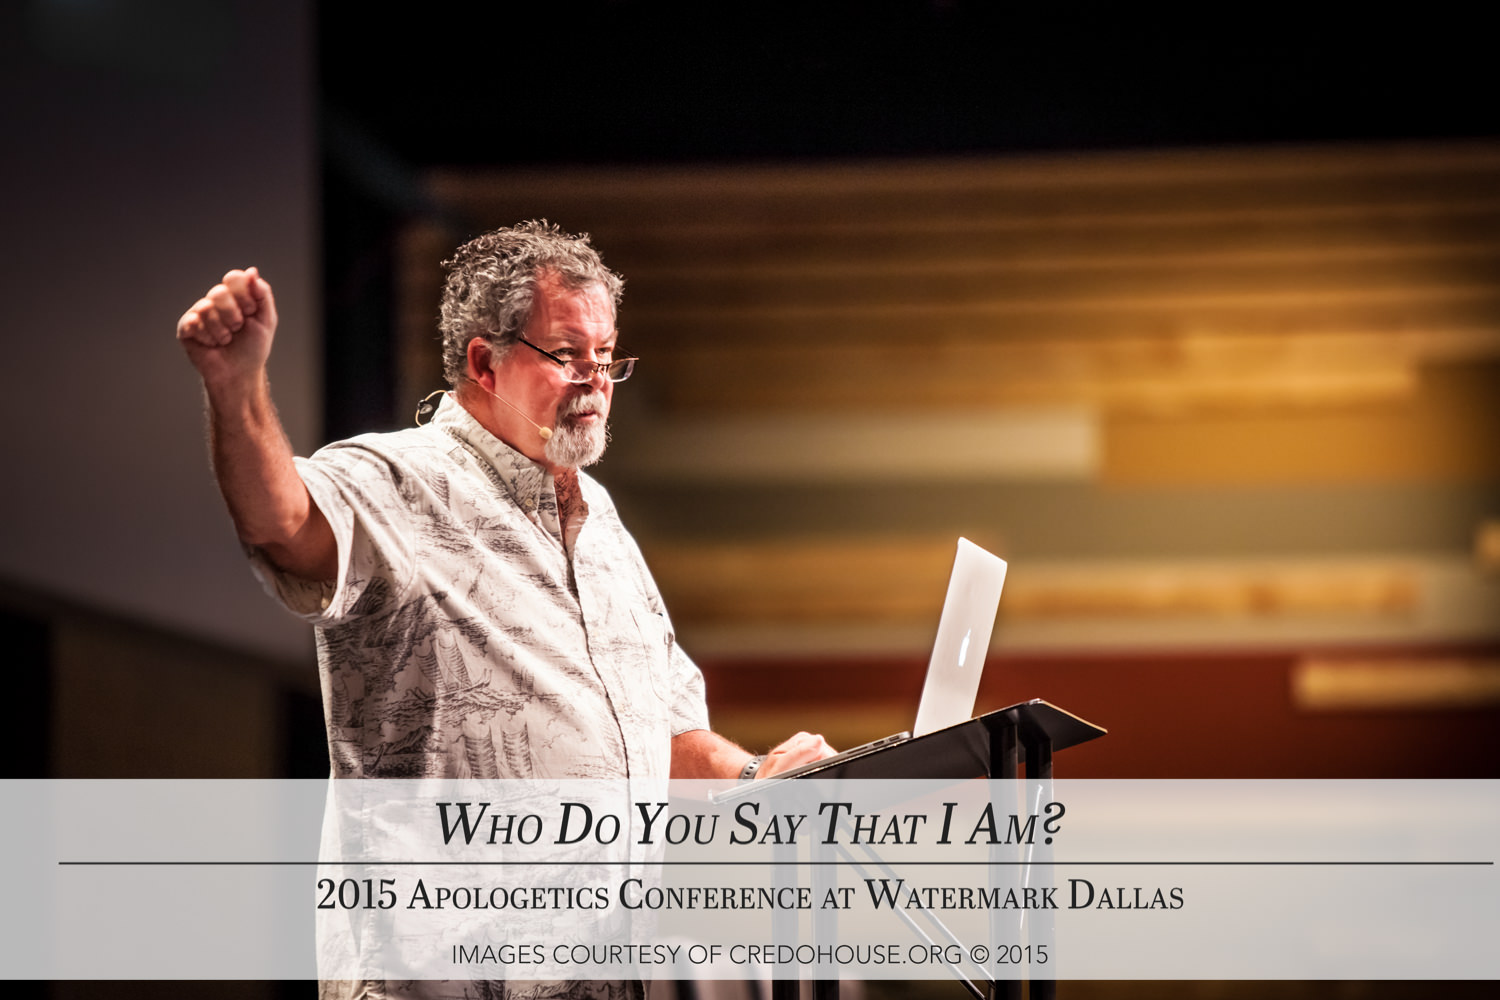 watermark-who-do-you-say-that-i-am-3176